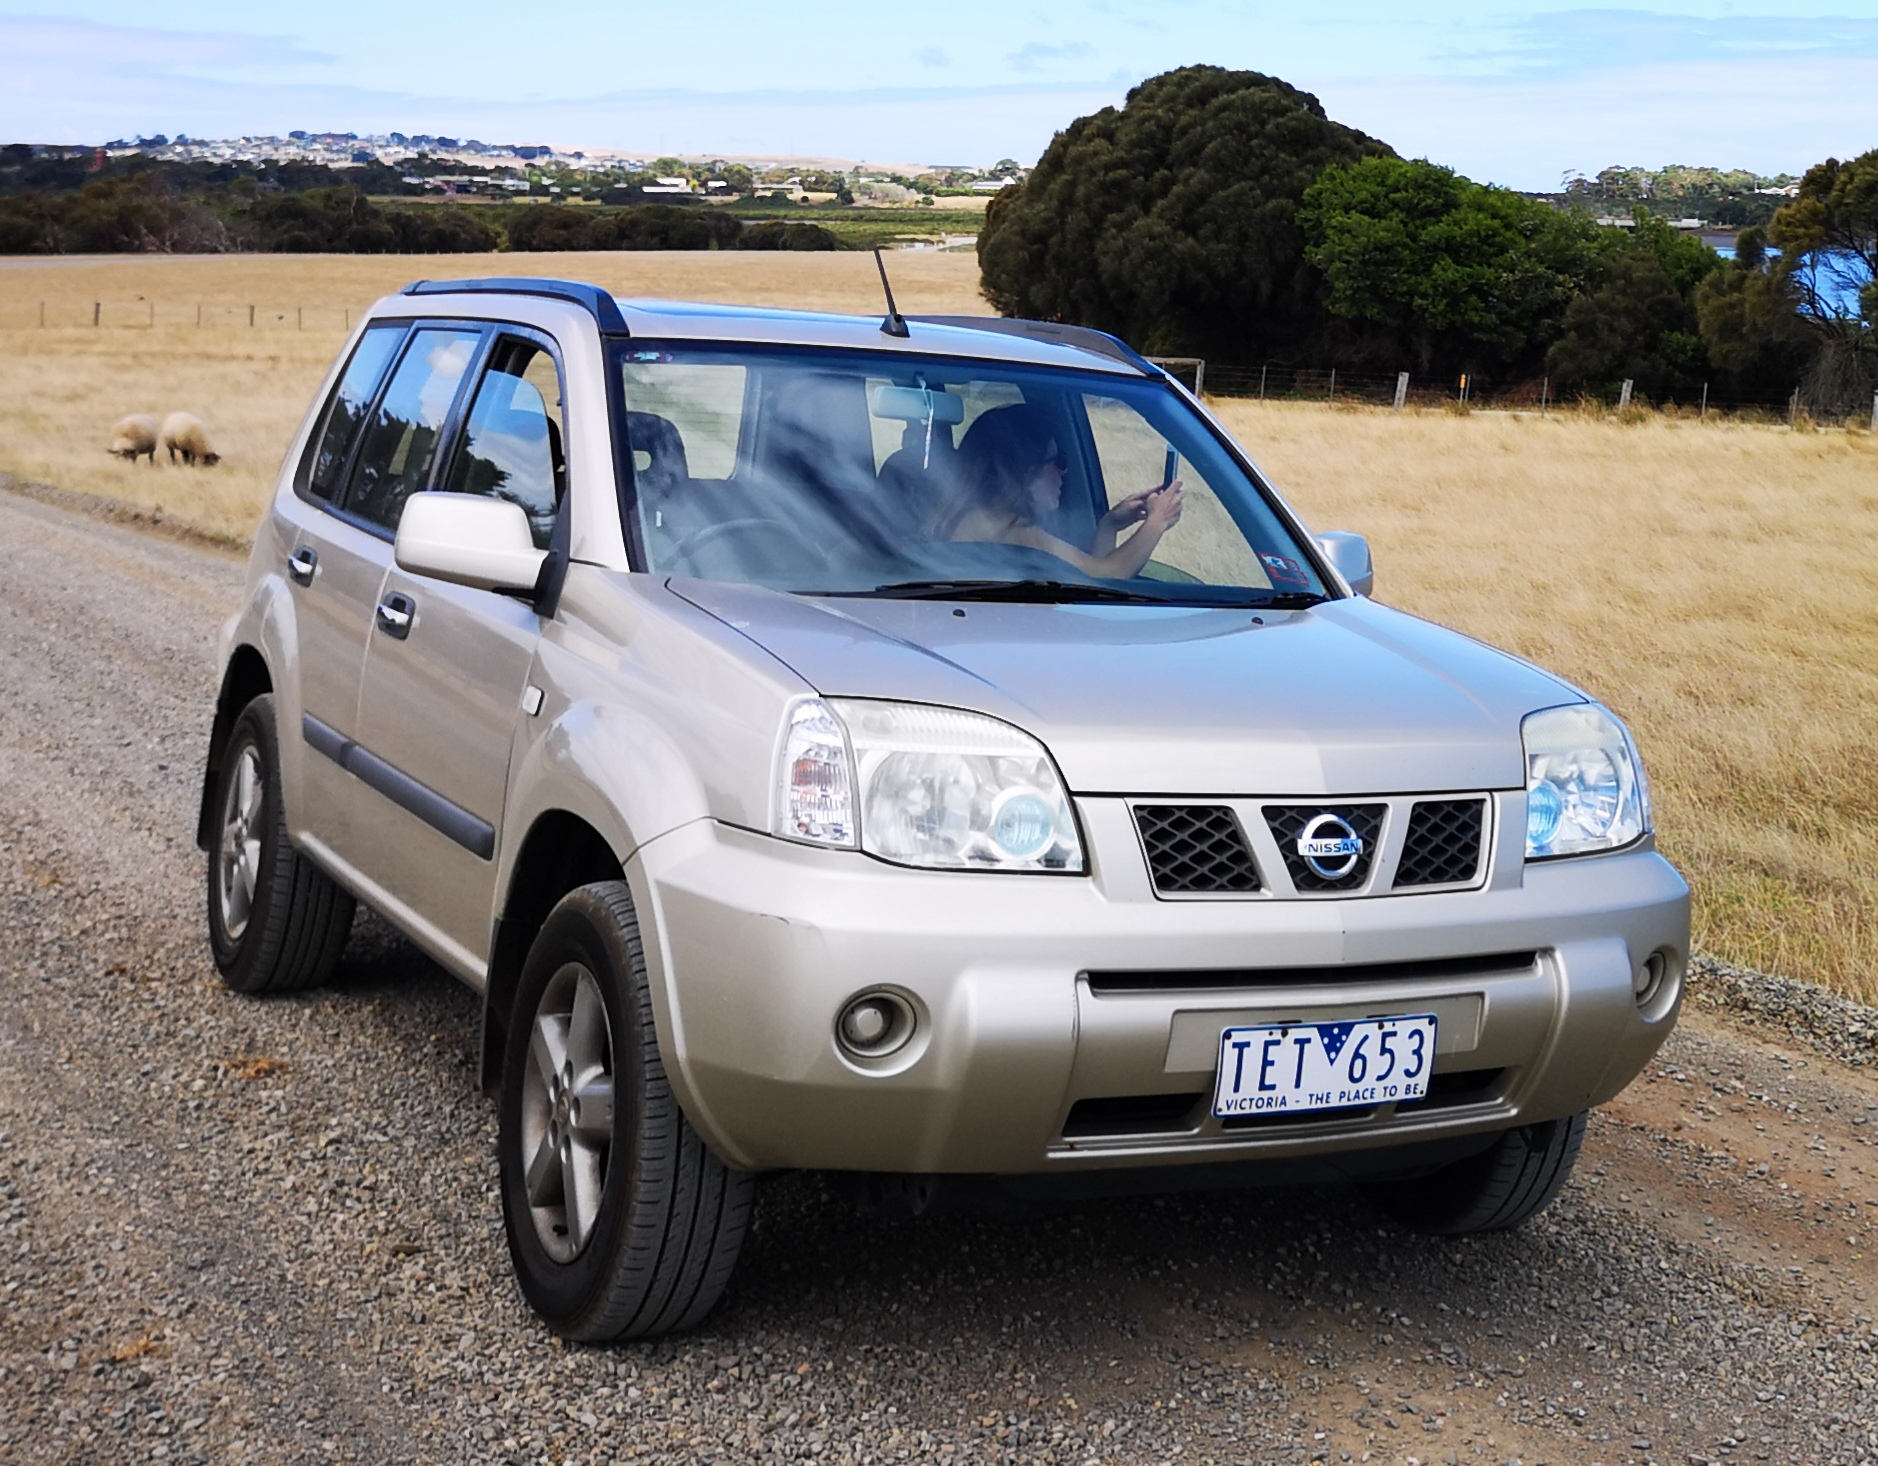 Picture of Stien's 2004 Nissan X-trail